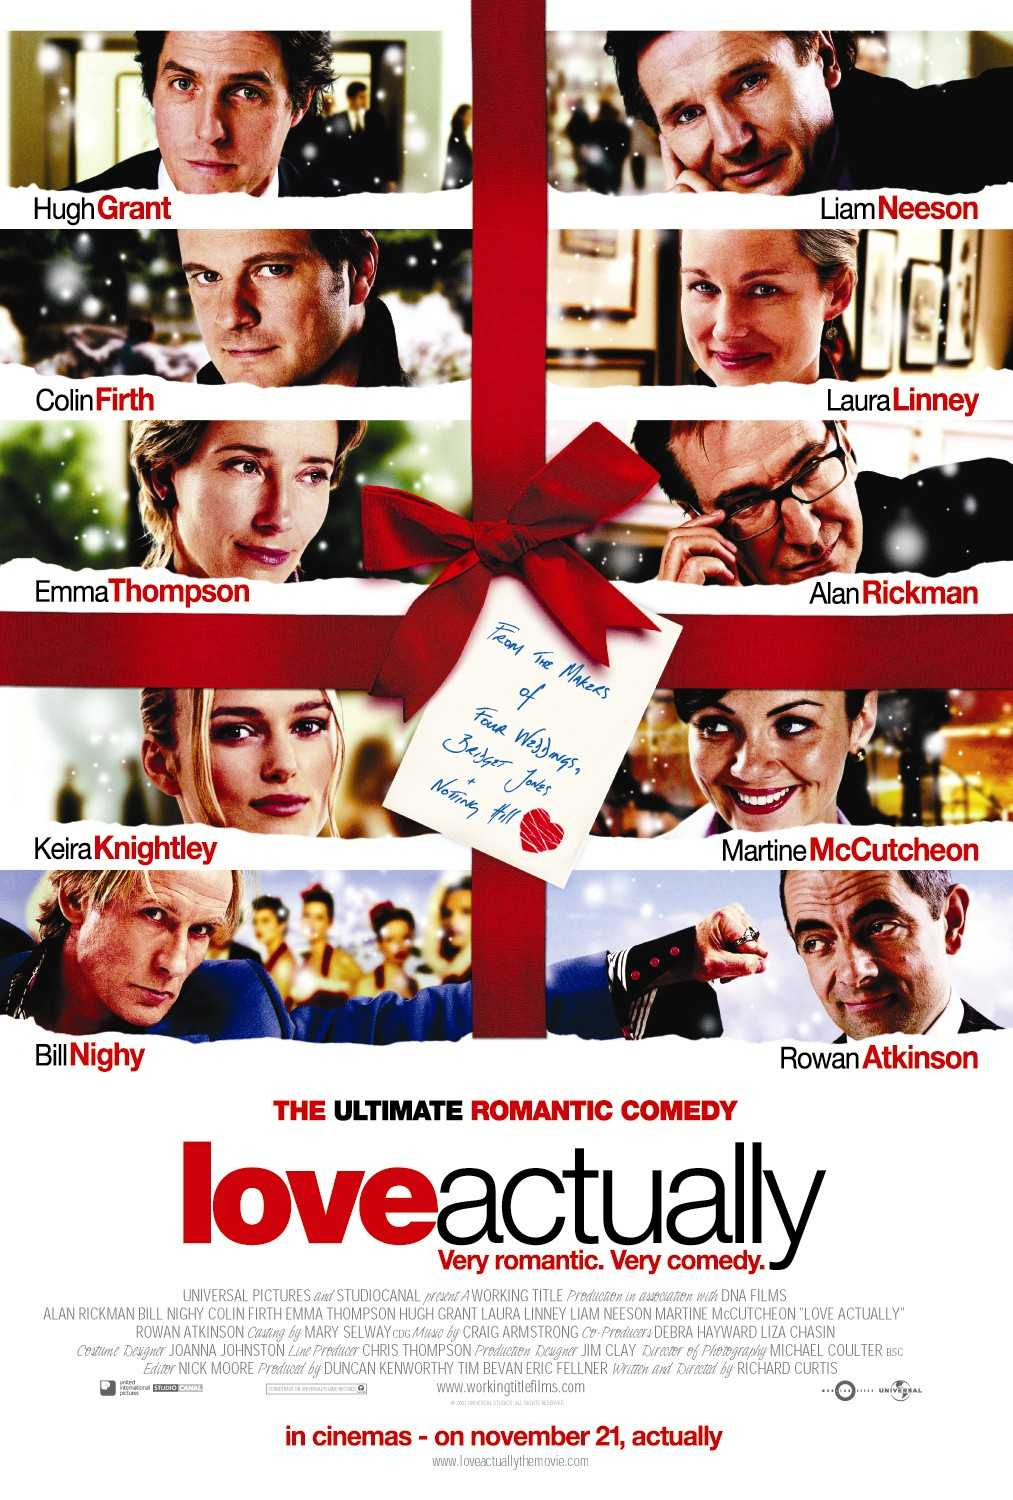 Is There A Love Actually Sequel In Our Future?